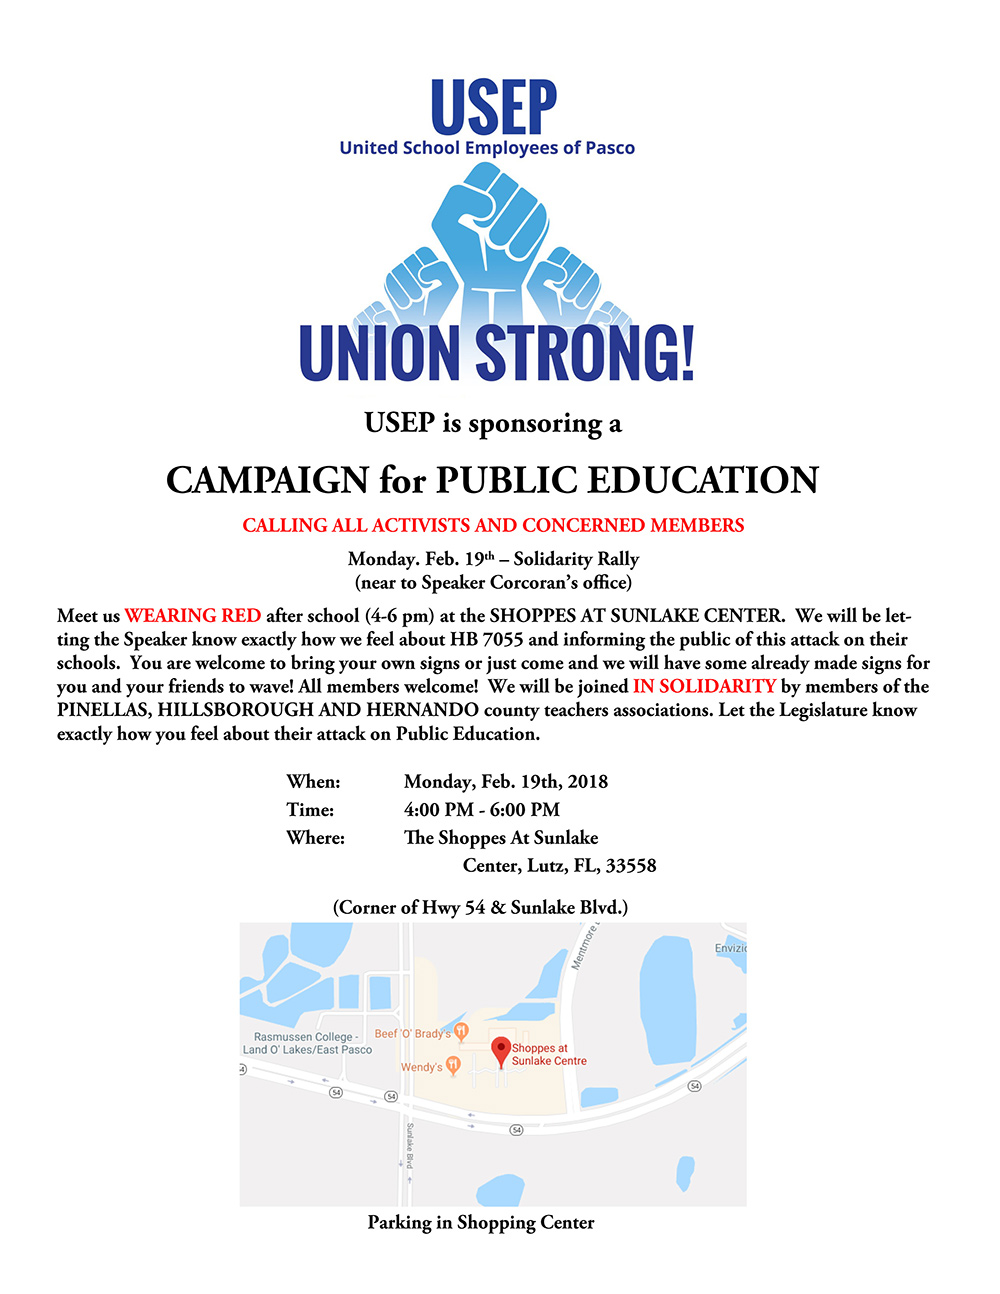 Campaign for Public Education Flyer